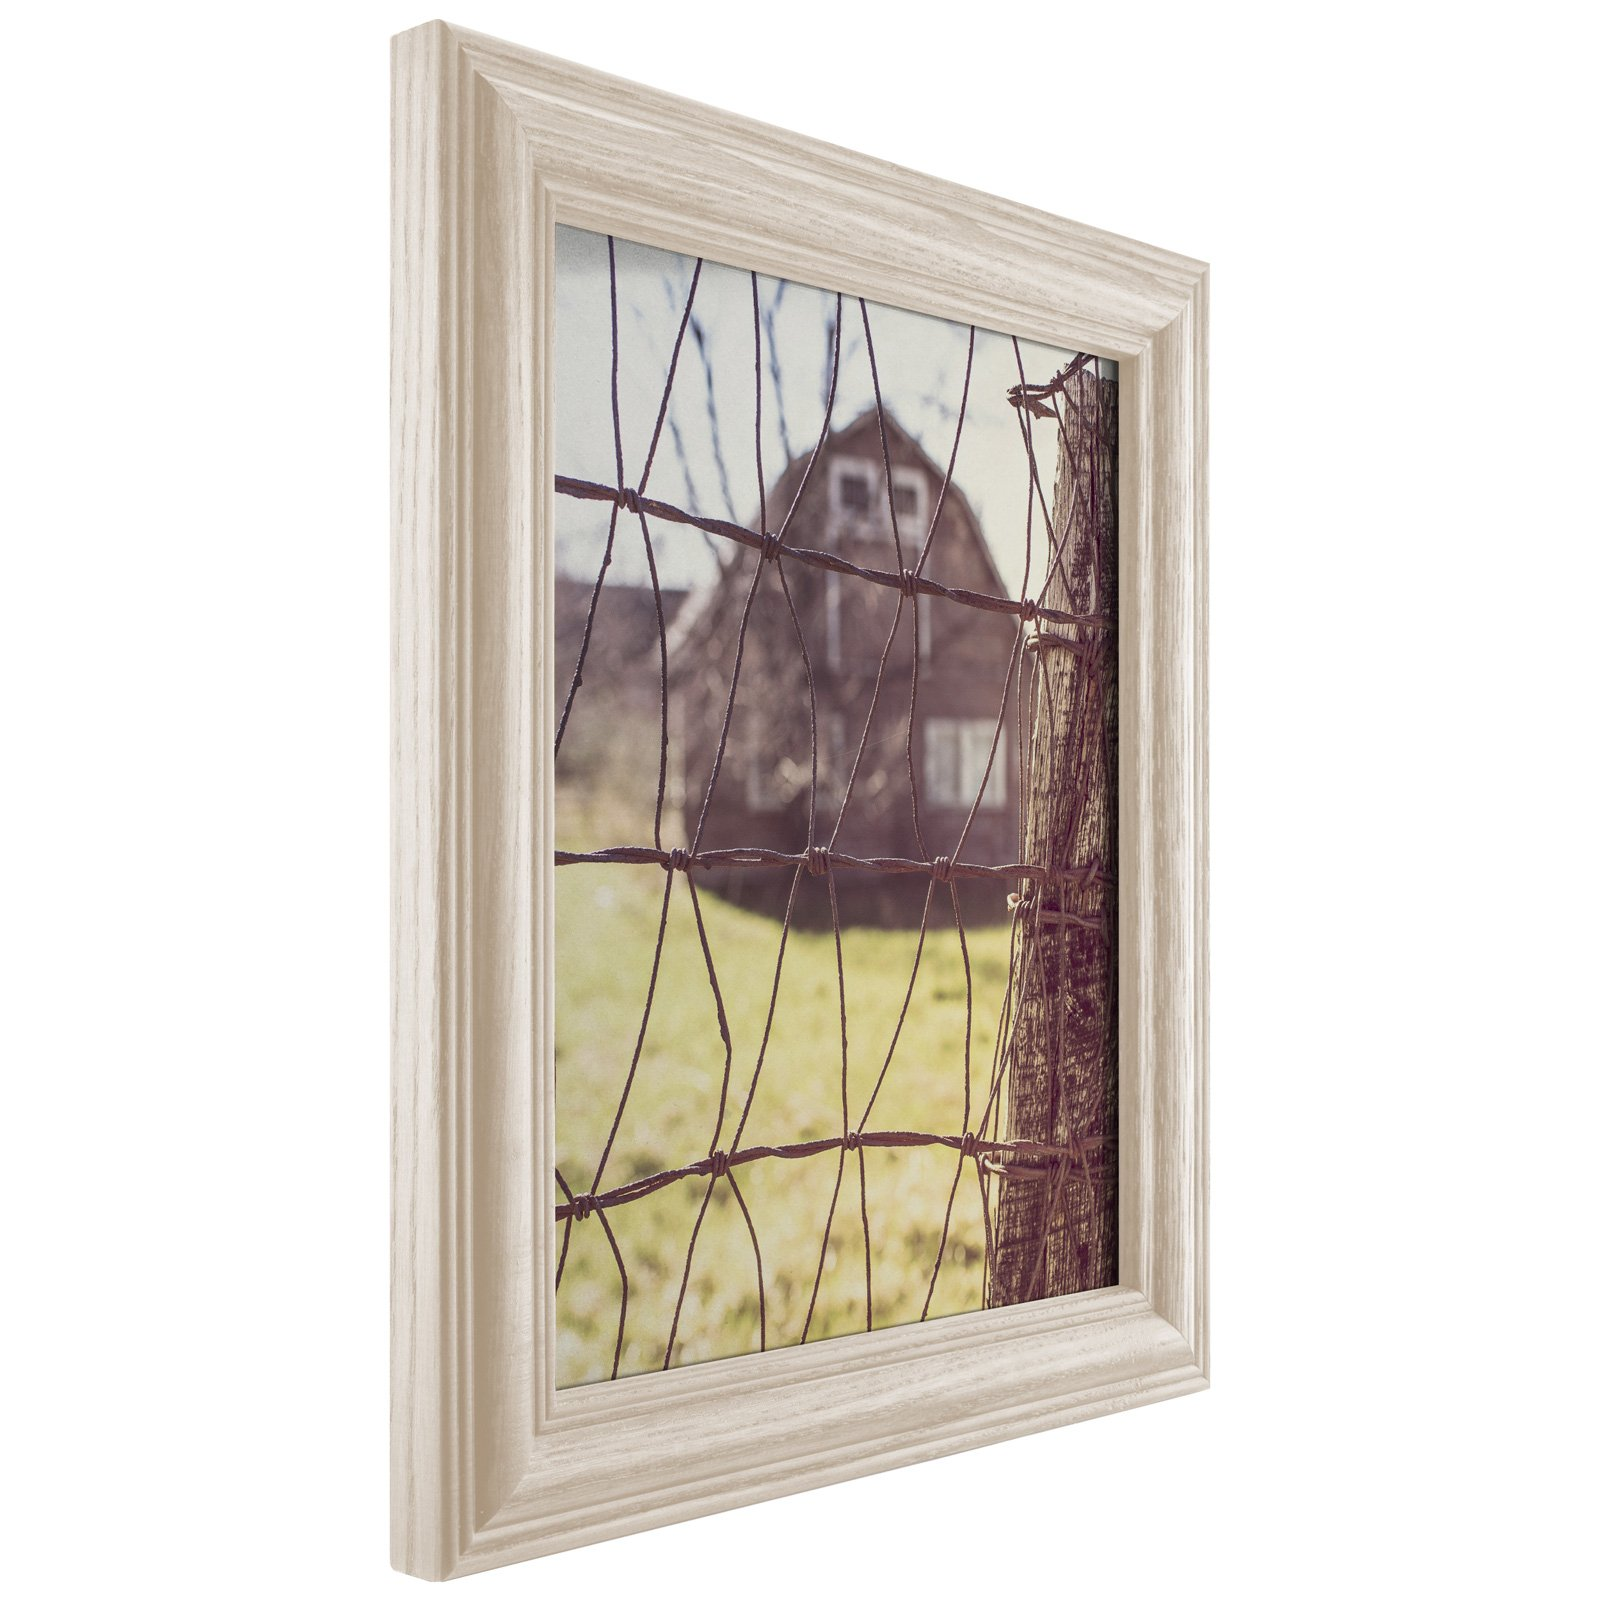 Cheap Frame 27 X 20 Find Frame 27 X 20 Deals On Line At Alibabacom